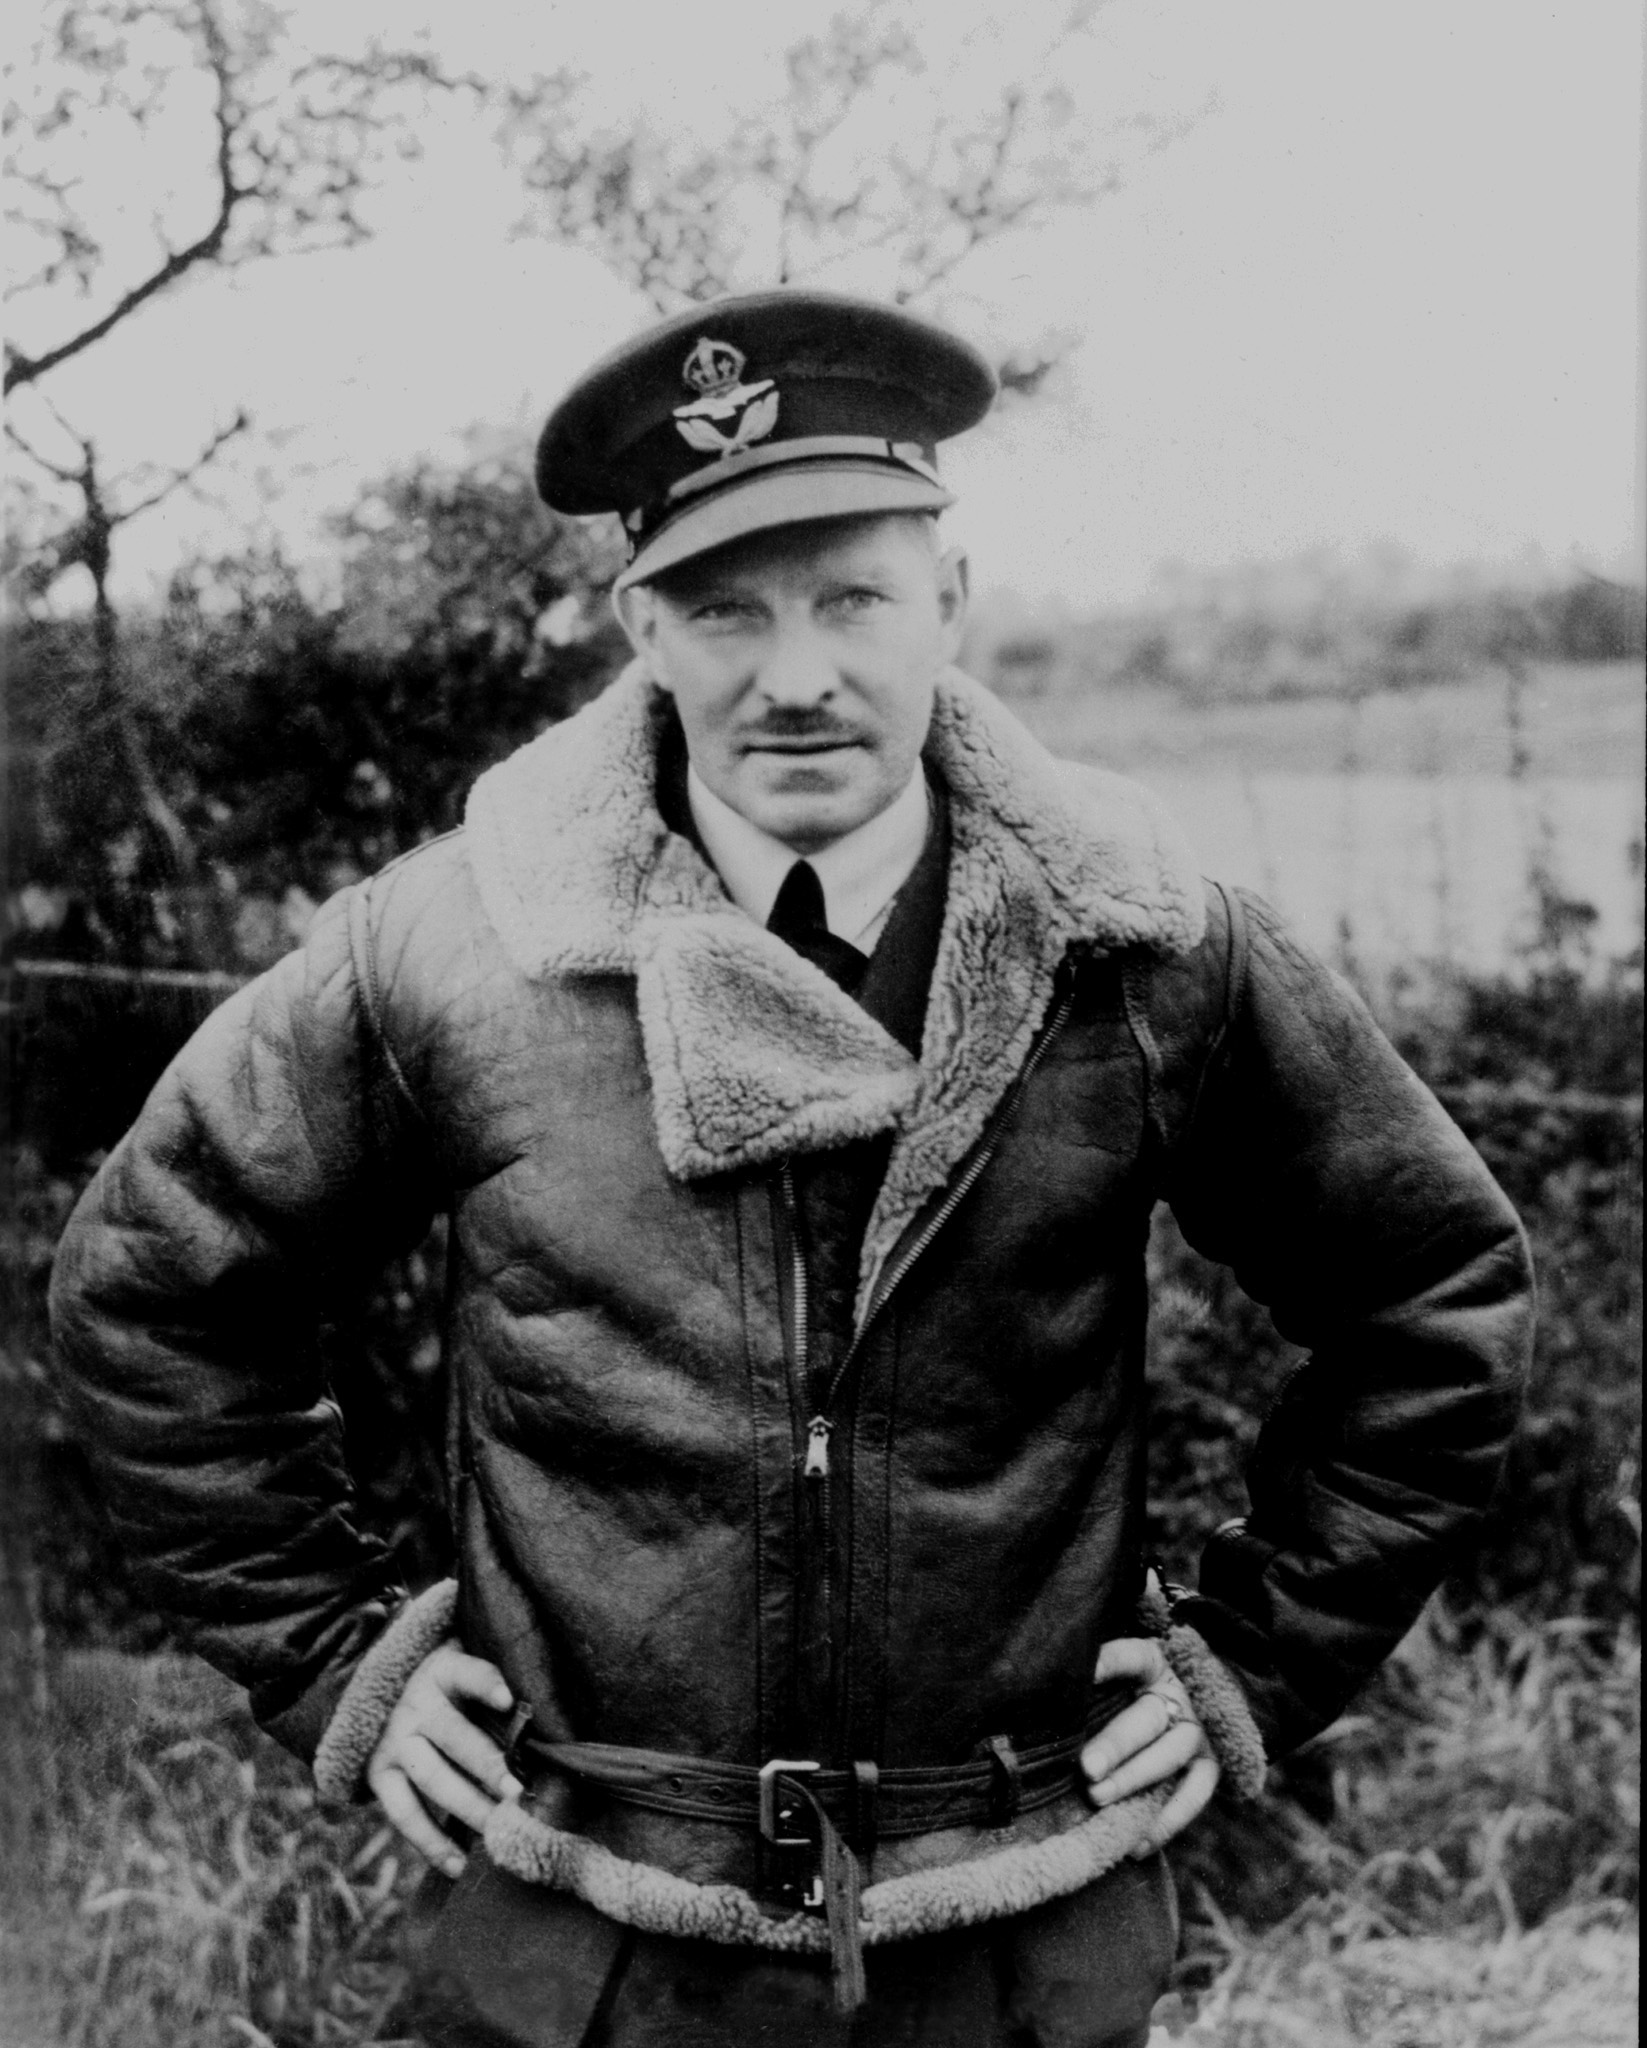 Le commandant d'aviation Ernest A. McNab, commandant du 1er Escadron, pendant la Bataille d'Angleterre. PHOTO : Bibliothèque et Archives Canada, PL-905